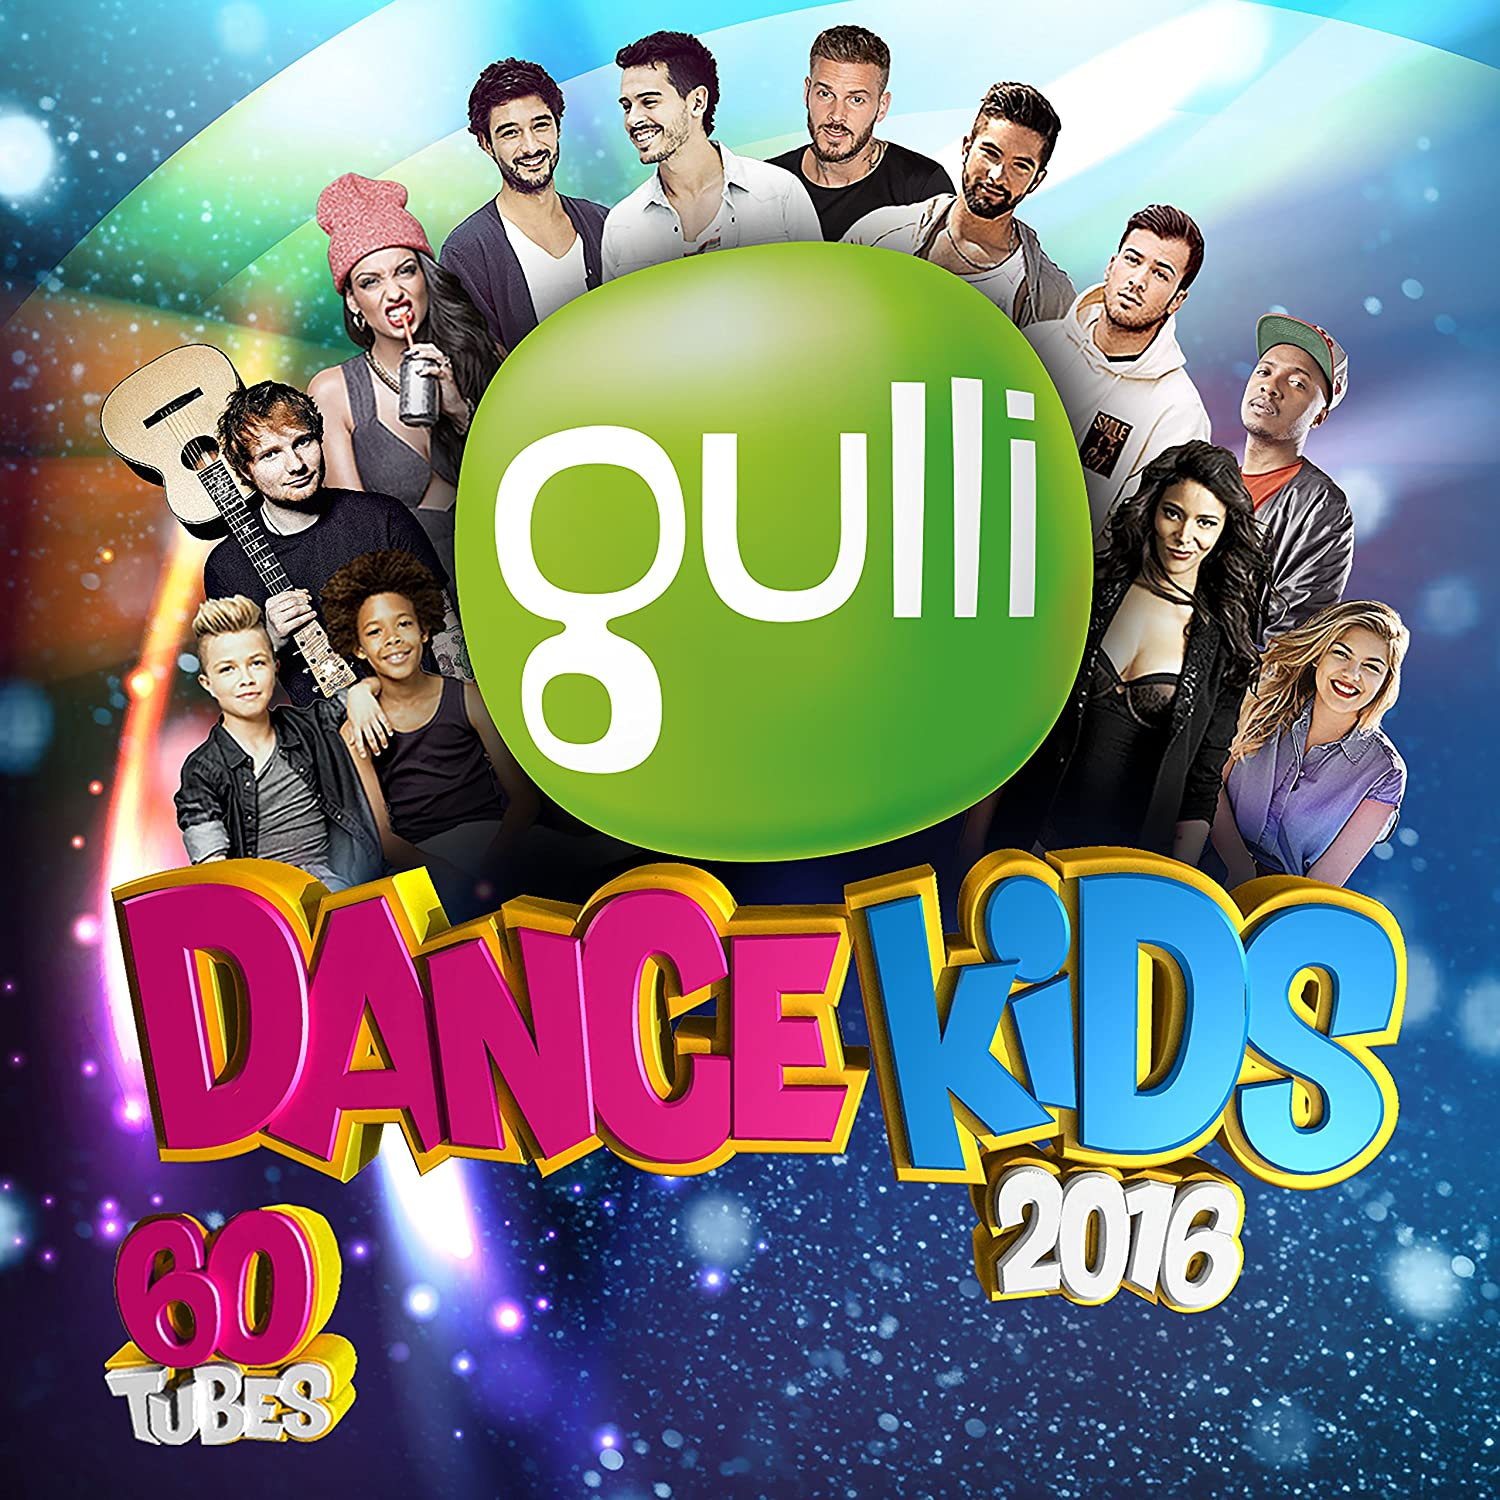 Various Artists-Gulli Dance Kids 2016 - Enfants mp3 320 Kbs